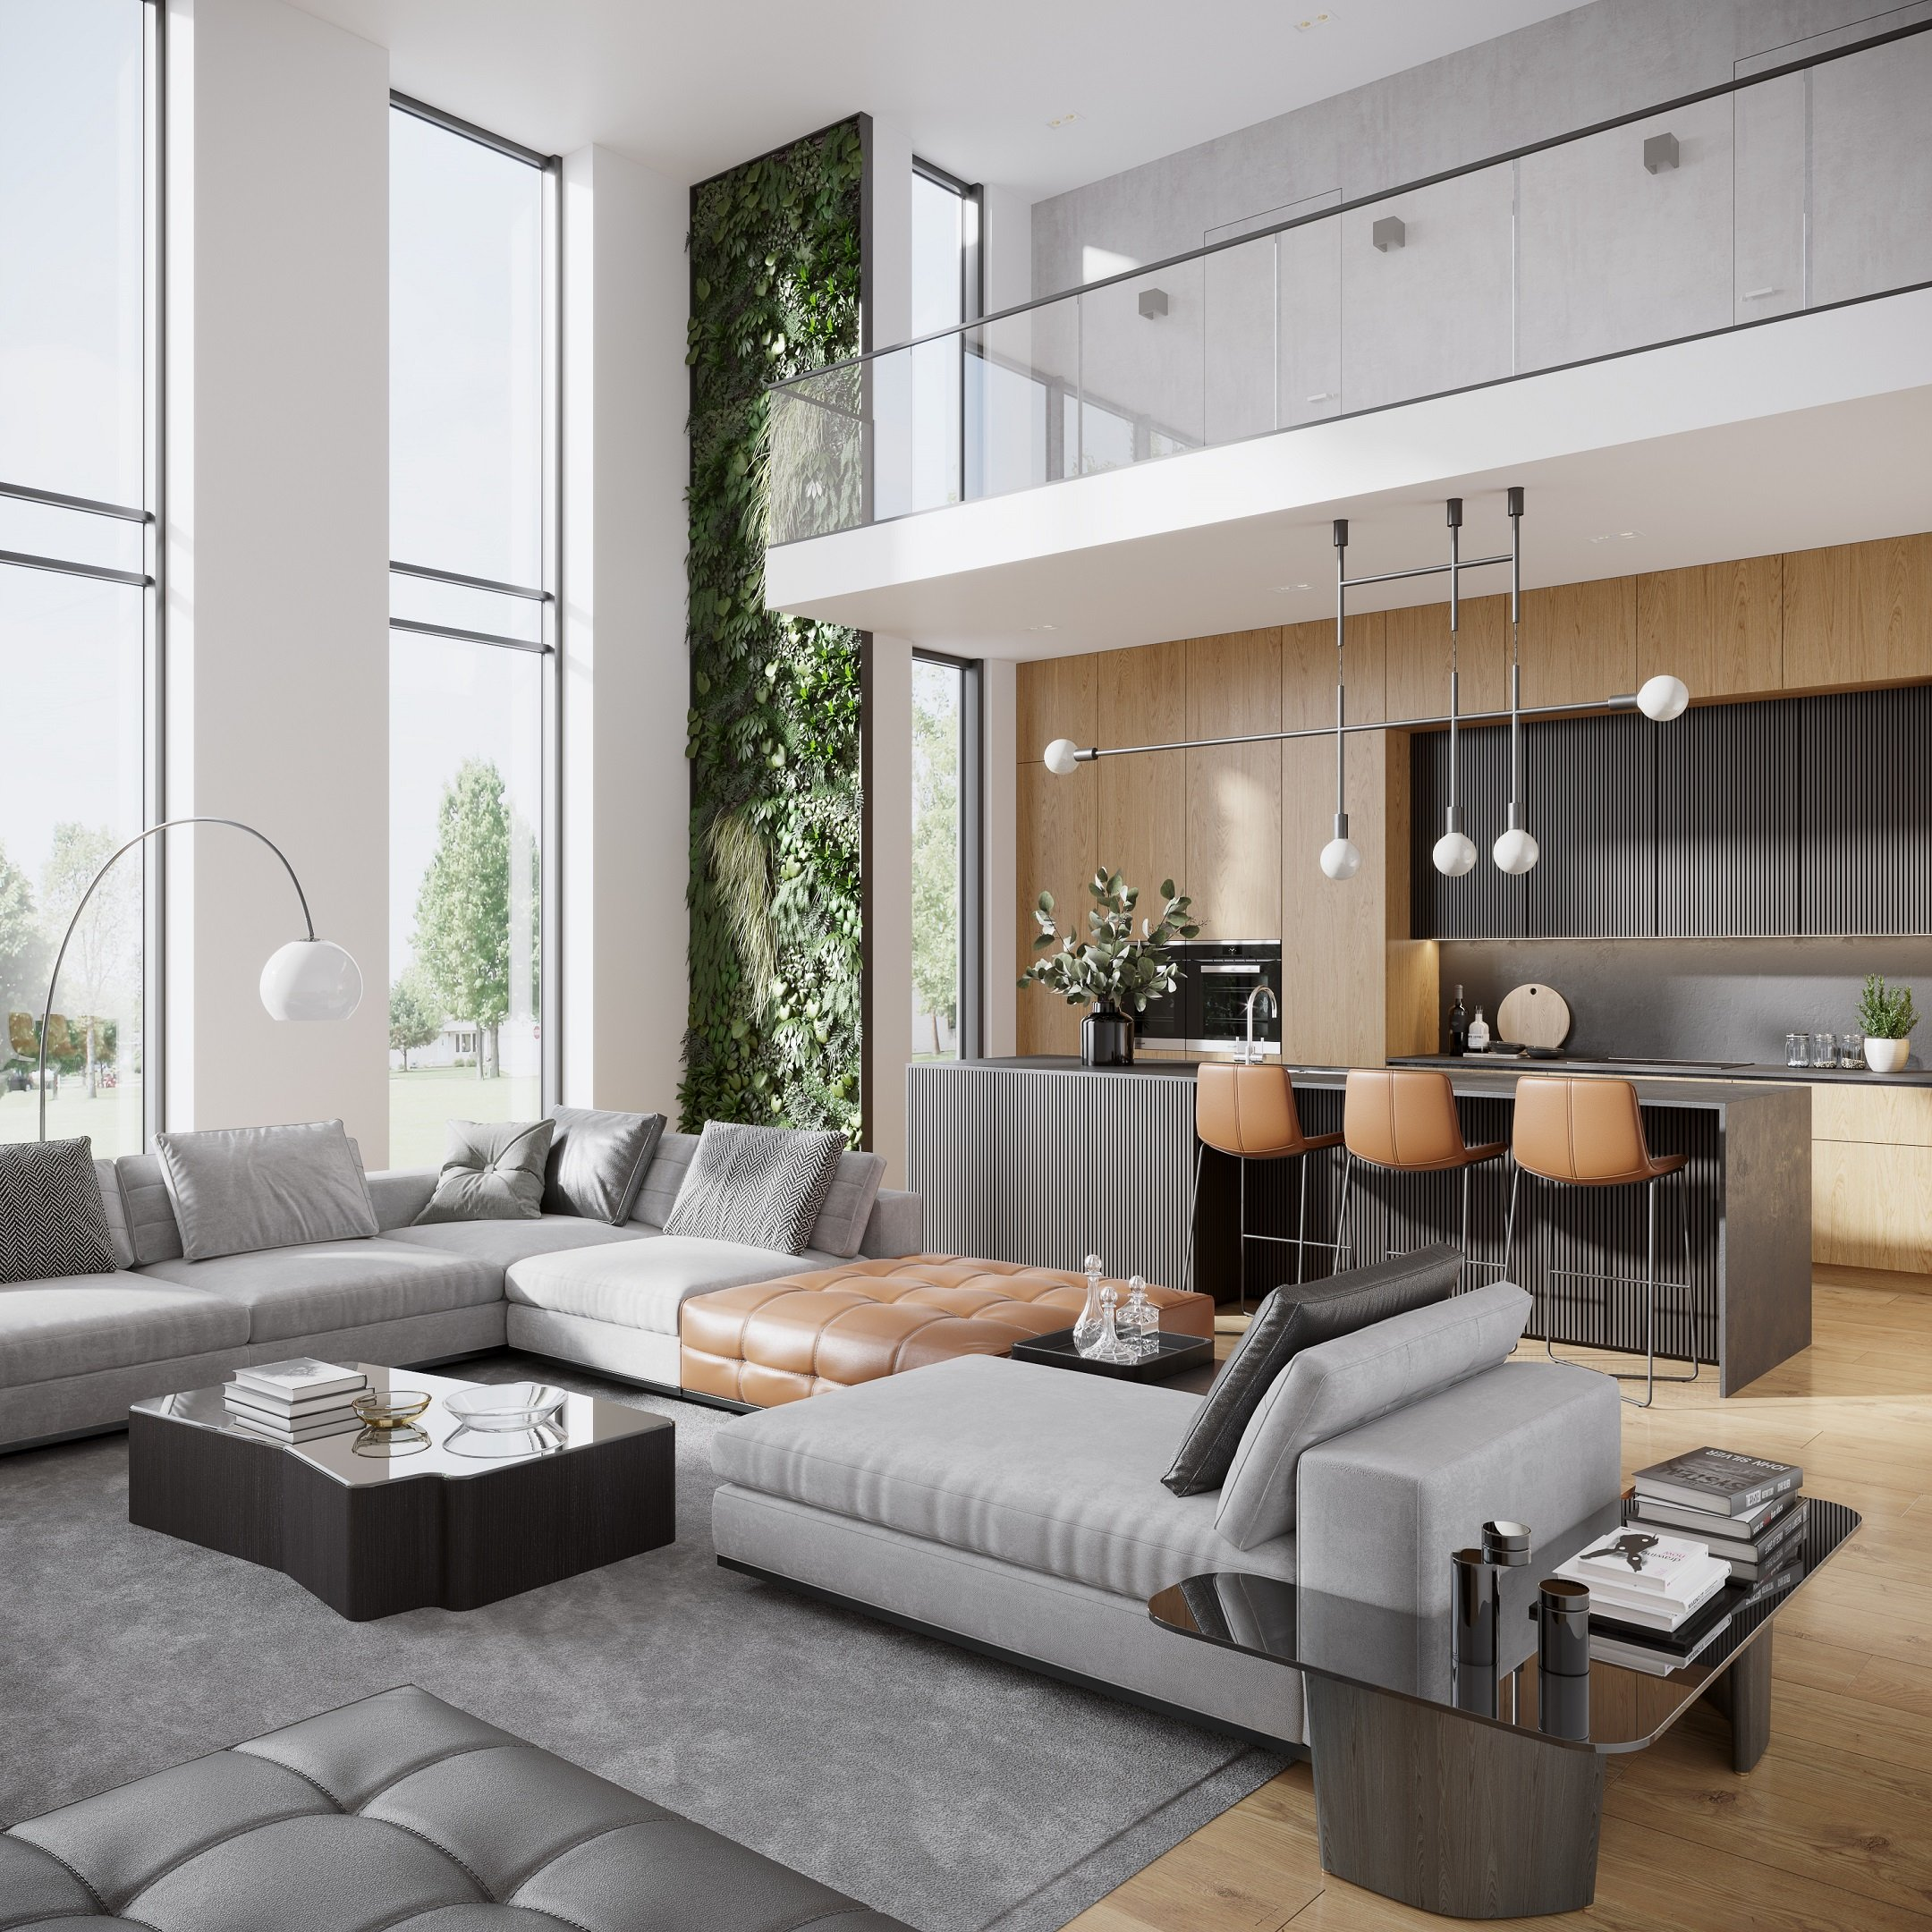 3D Visualization of a Modern-Style Studio Apartment